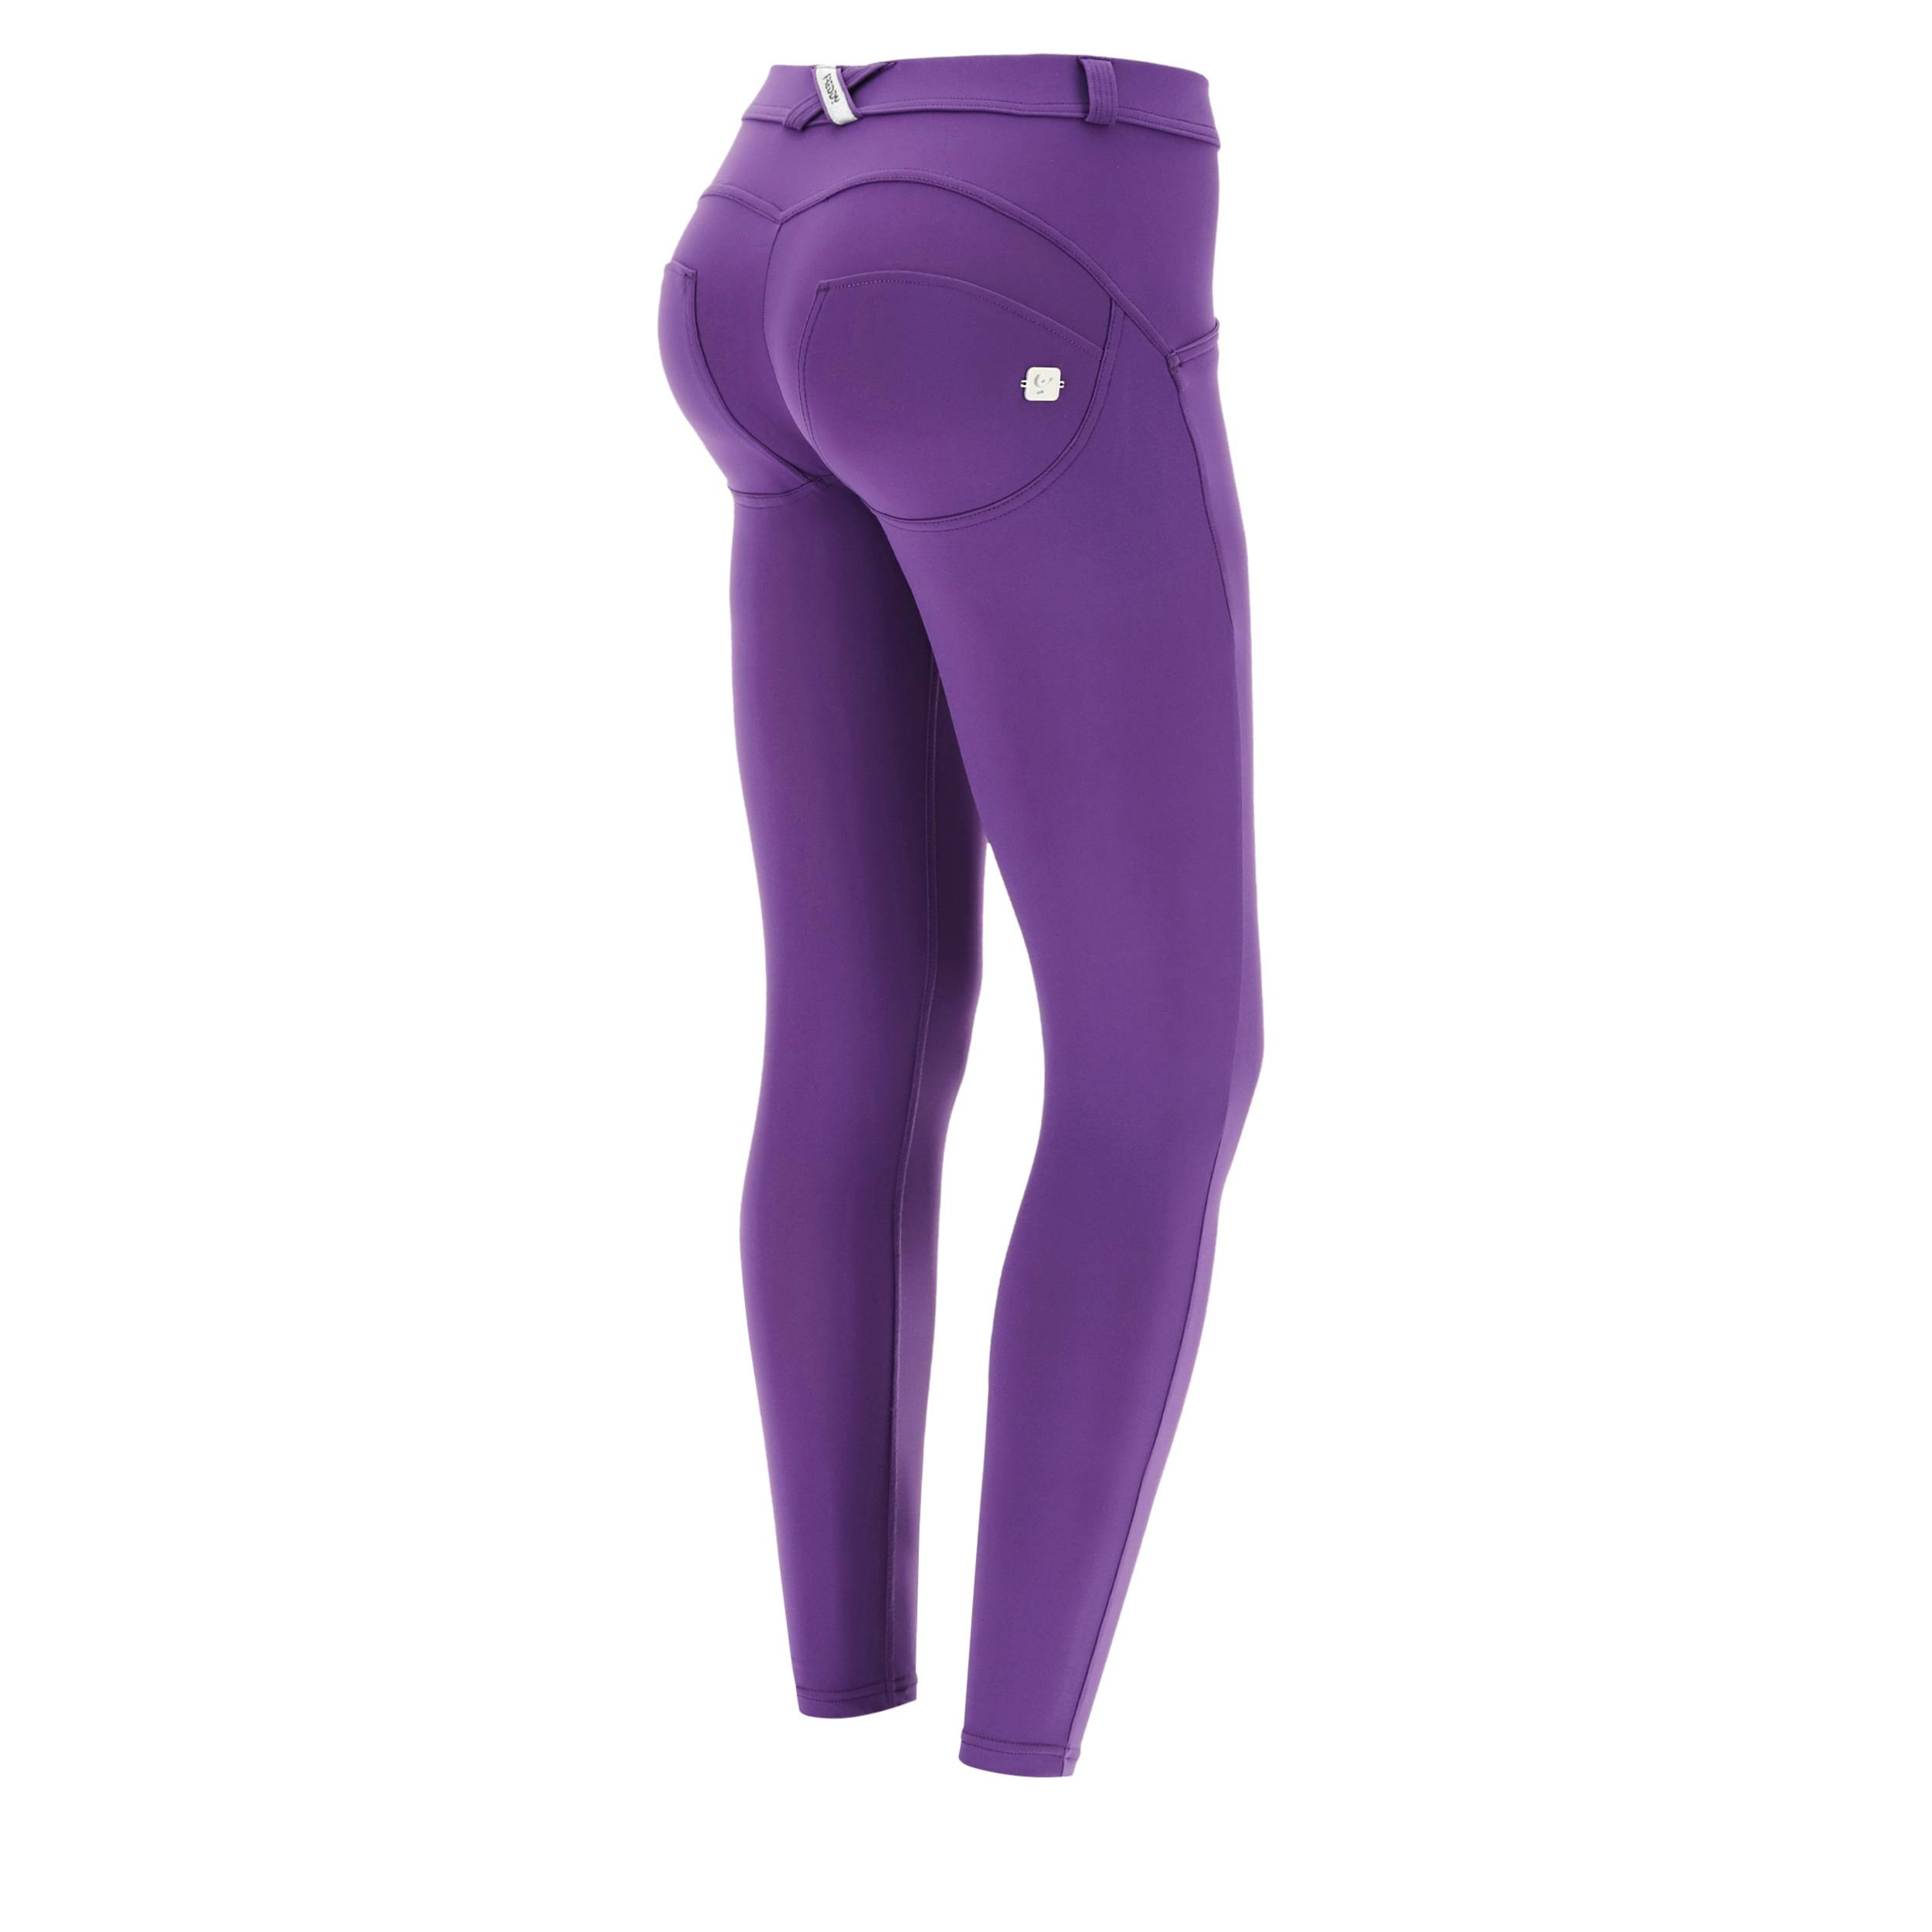 Freddy Pantaloni push up WR.UP® superskinny 7/8 bioattivi Made in Italy Imperial Purple